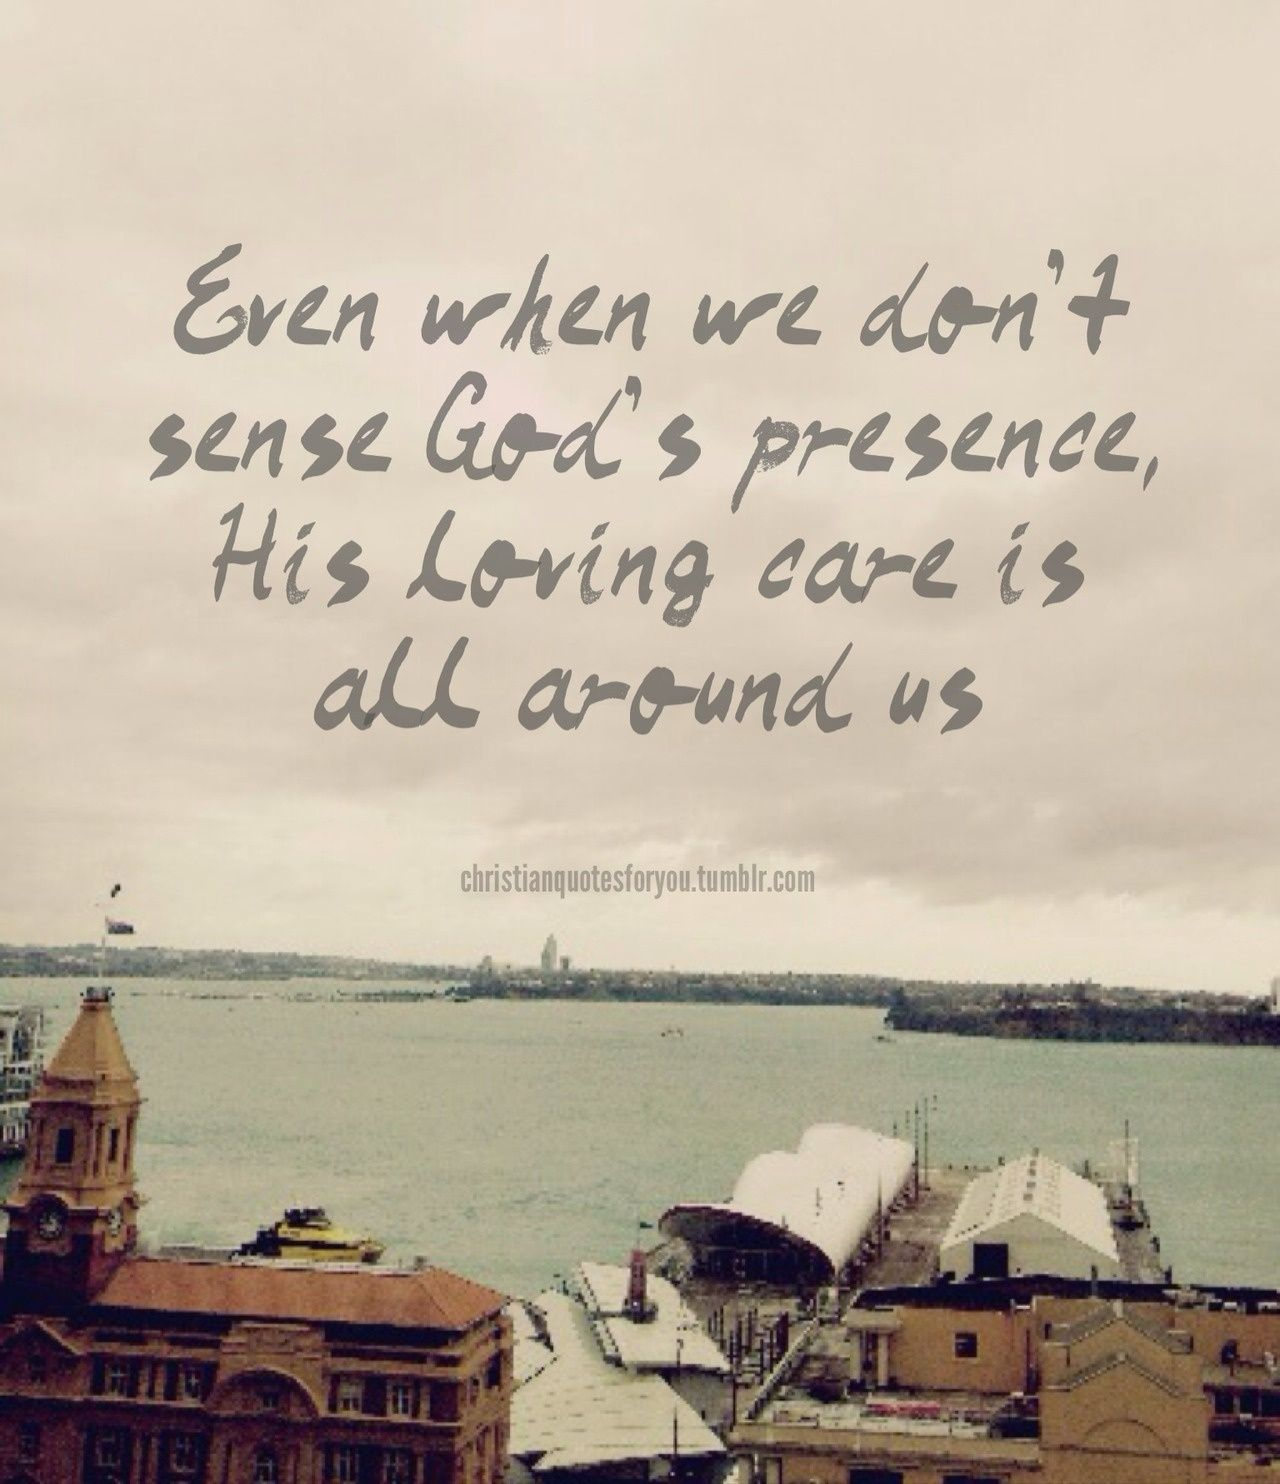 Christian Quotes About Love Quotes Tumblr Country Lyrics Love Song Quotes Tumblr Best Song